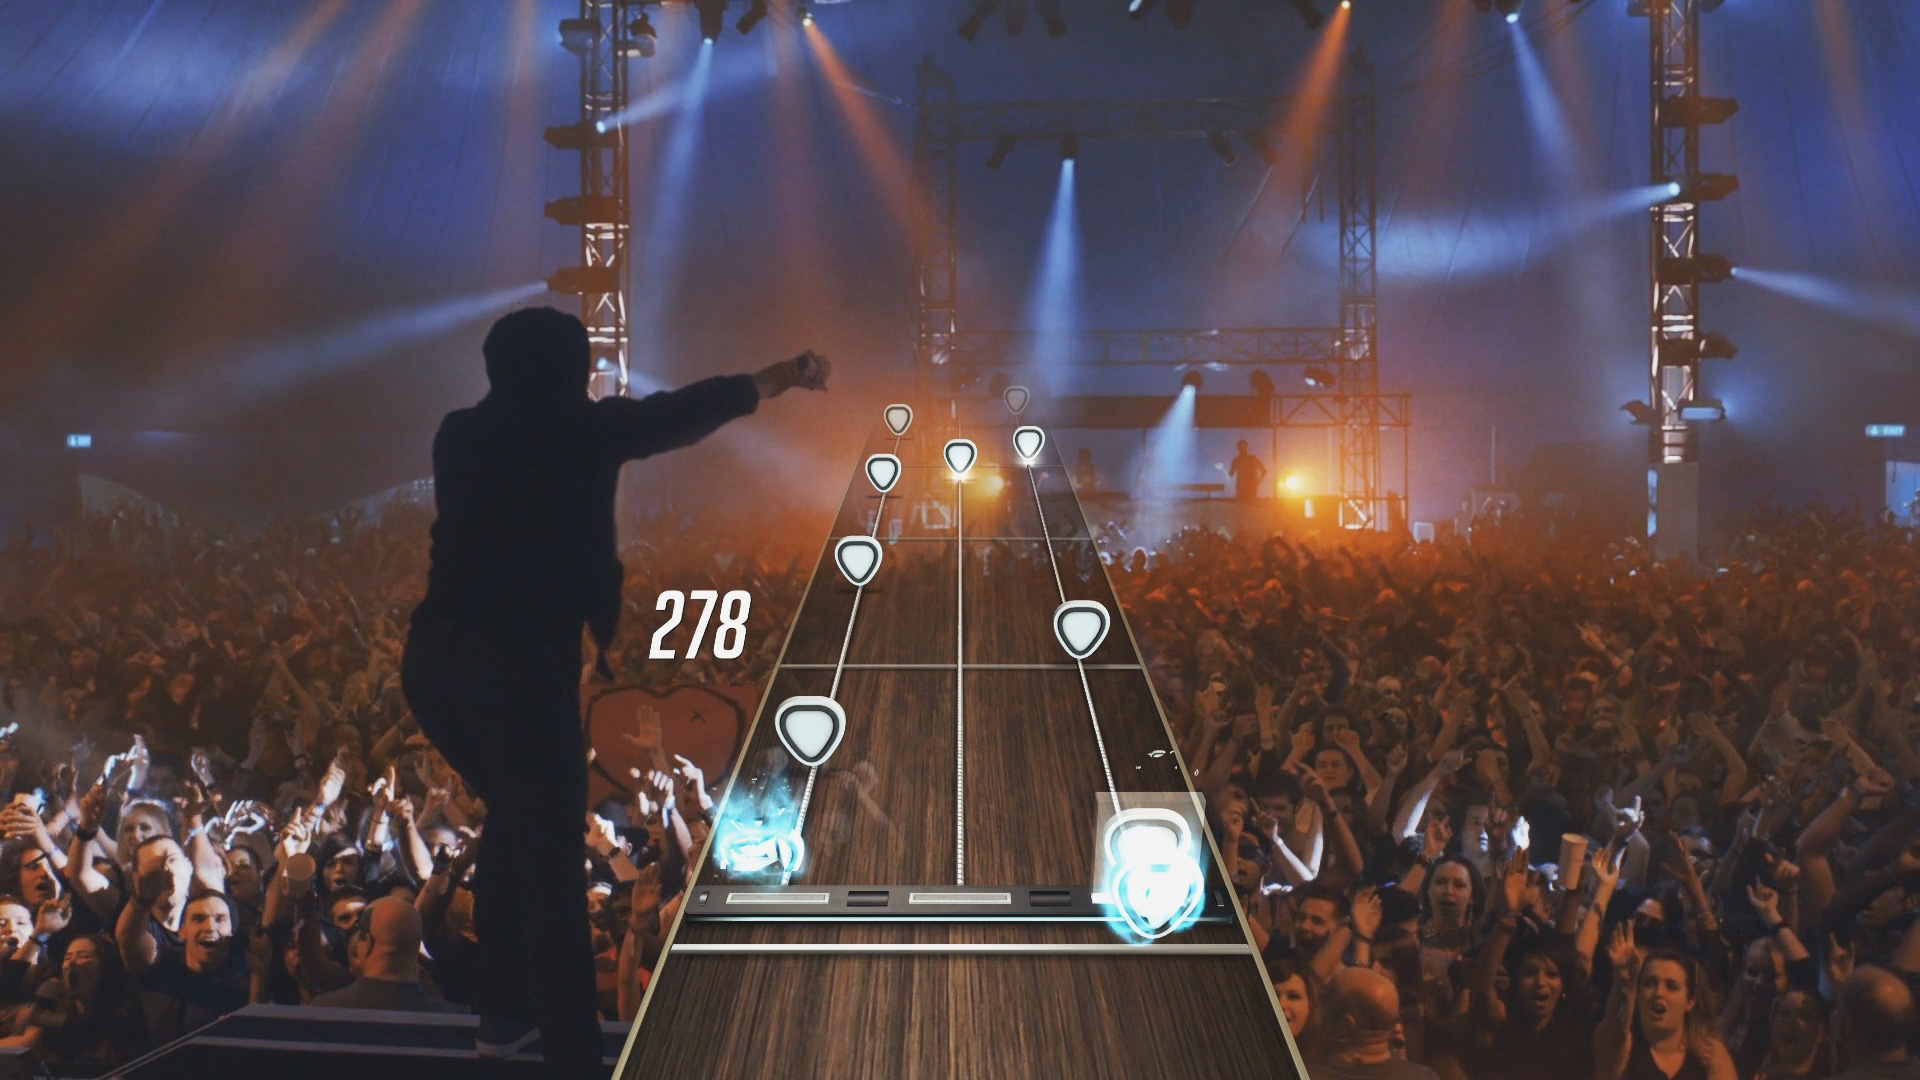 Mania Wallpaper Fall Out Boy Guitar Hero Live Vs Rock Band 4 Which Is Best Tired